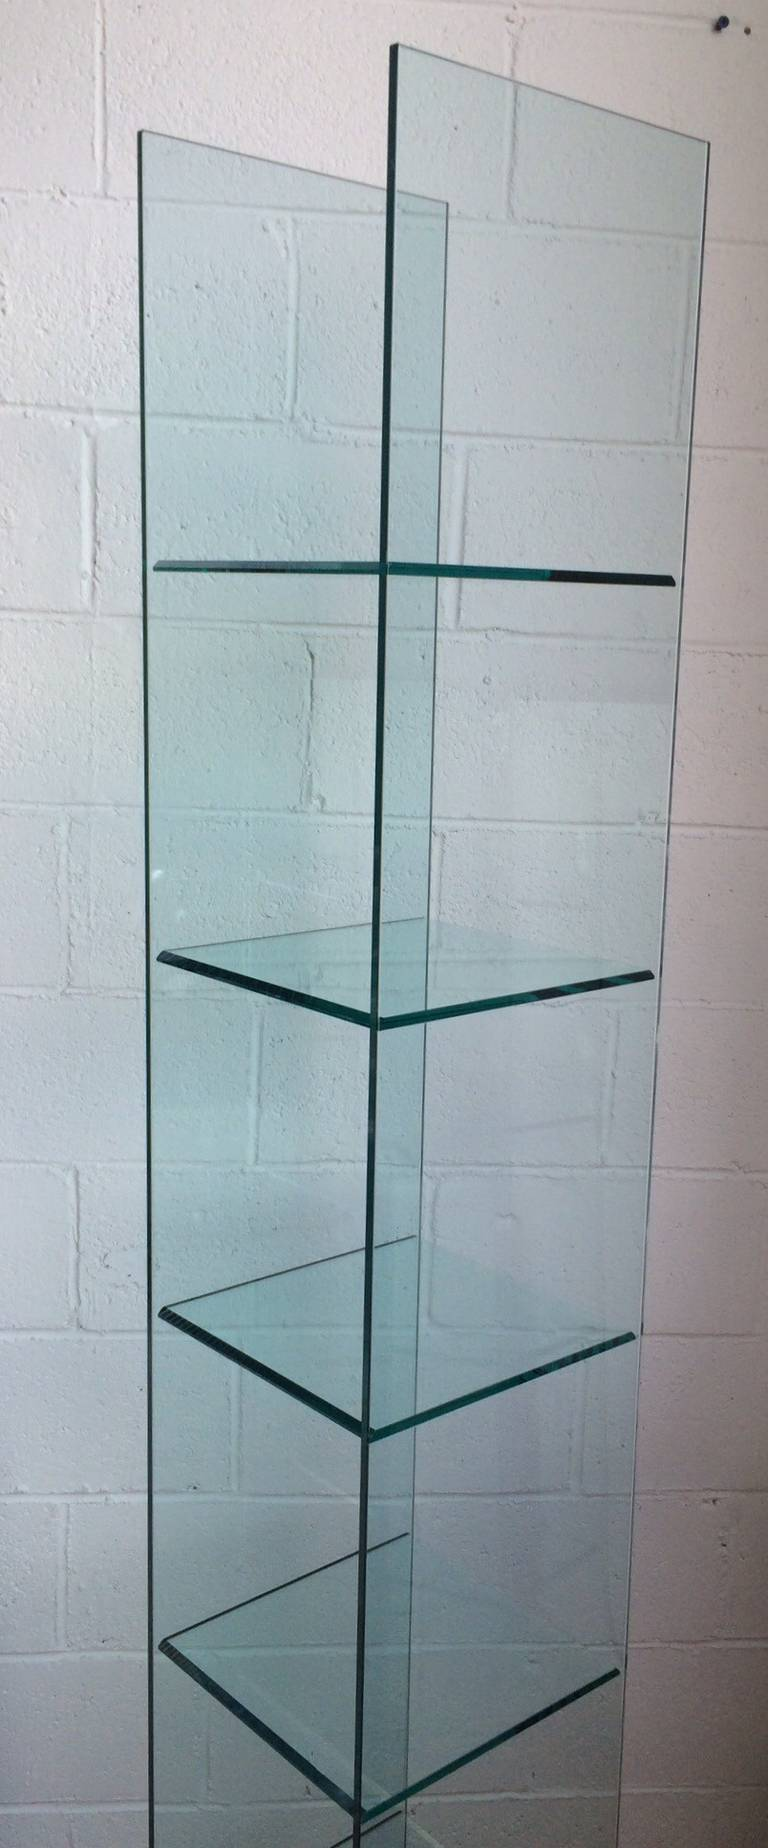 babele glass shelving unit tower  fiam at stdibs - babele glass shelving unit tower  fiam